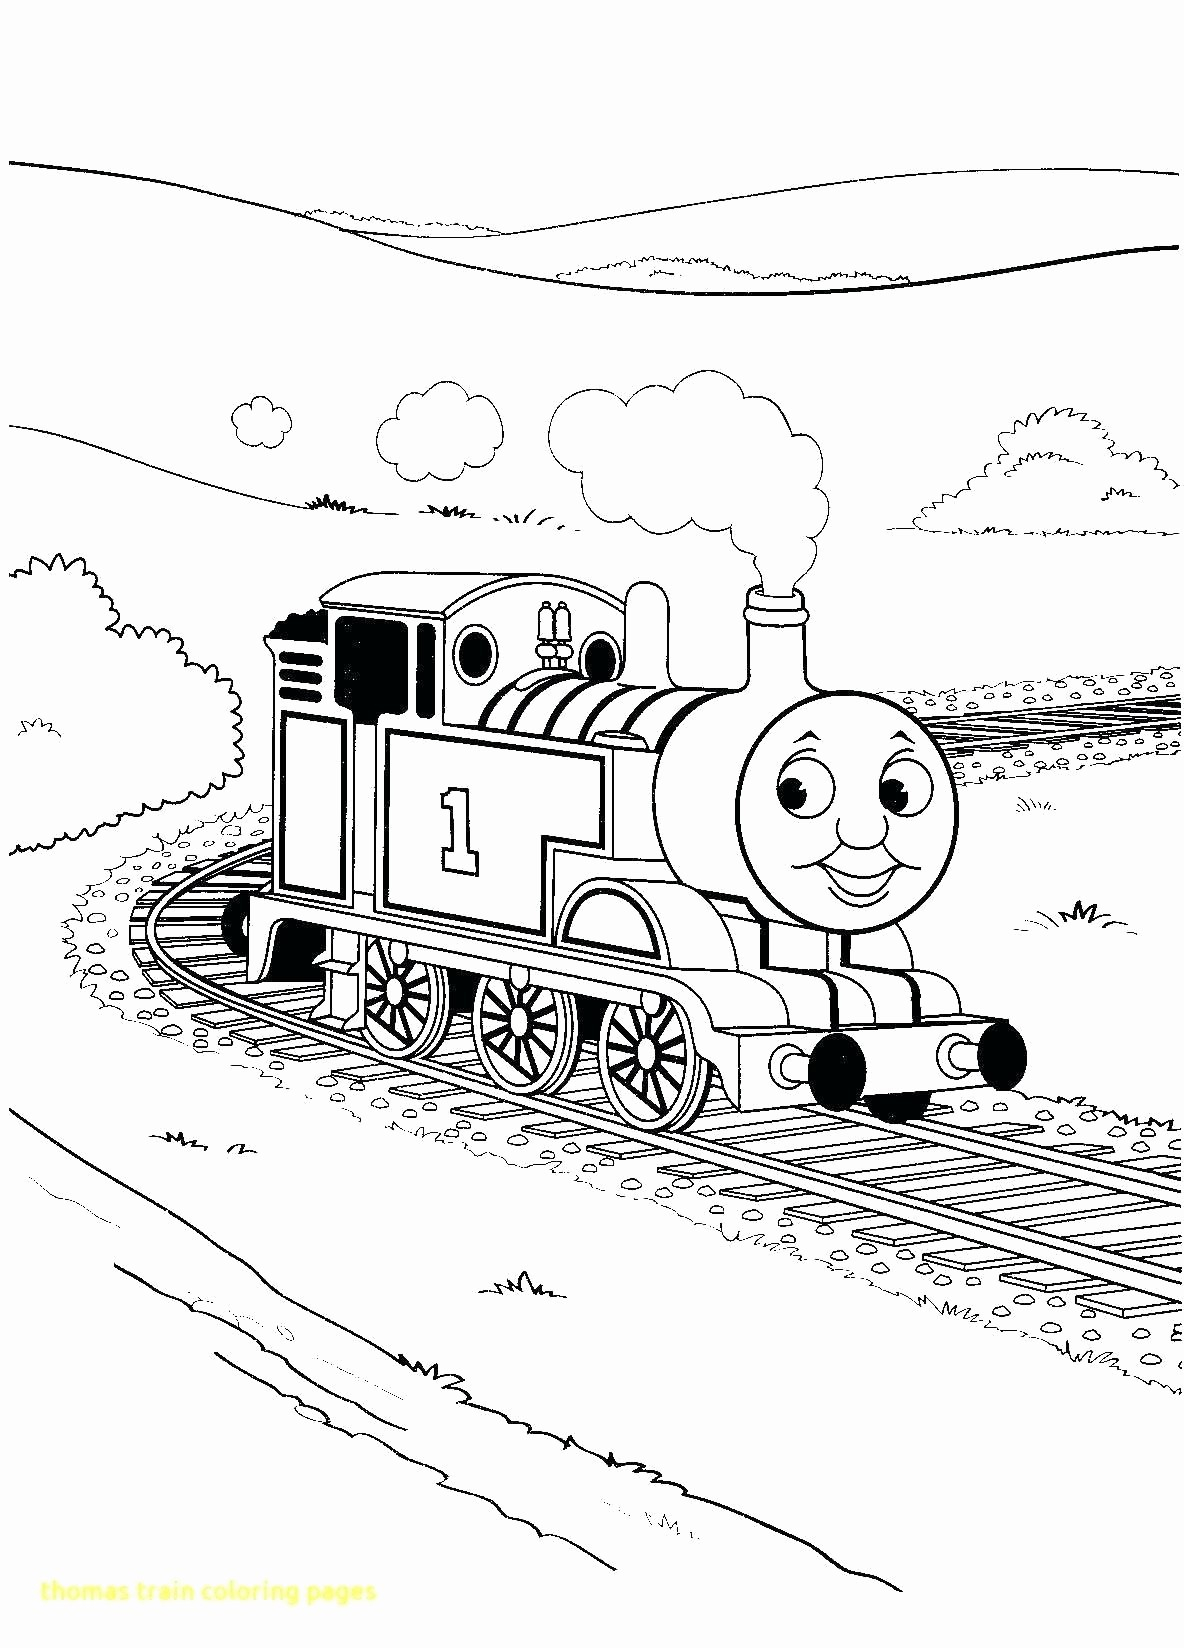 Train Coloring Pages Thomas The Train Printable Coloring Pages Elegant Thomas The Train